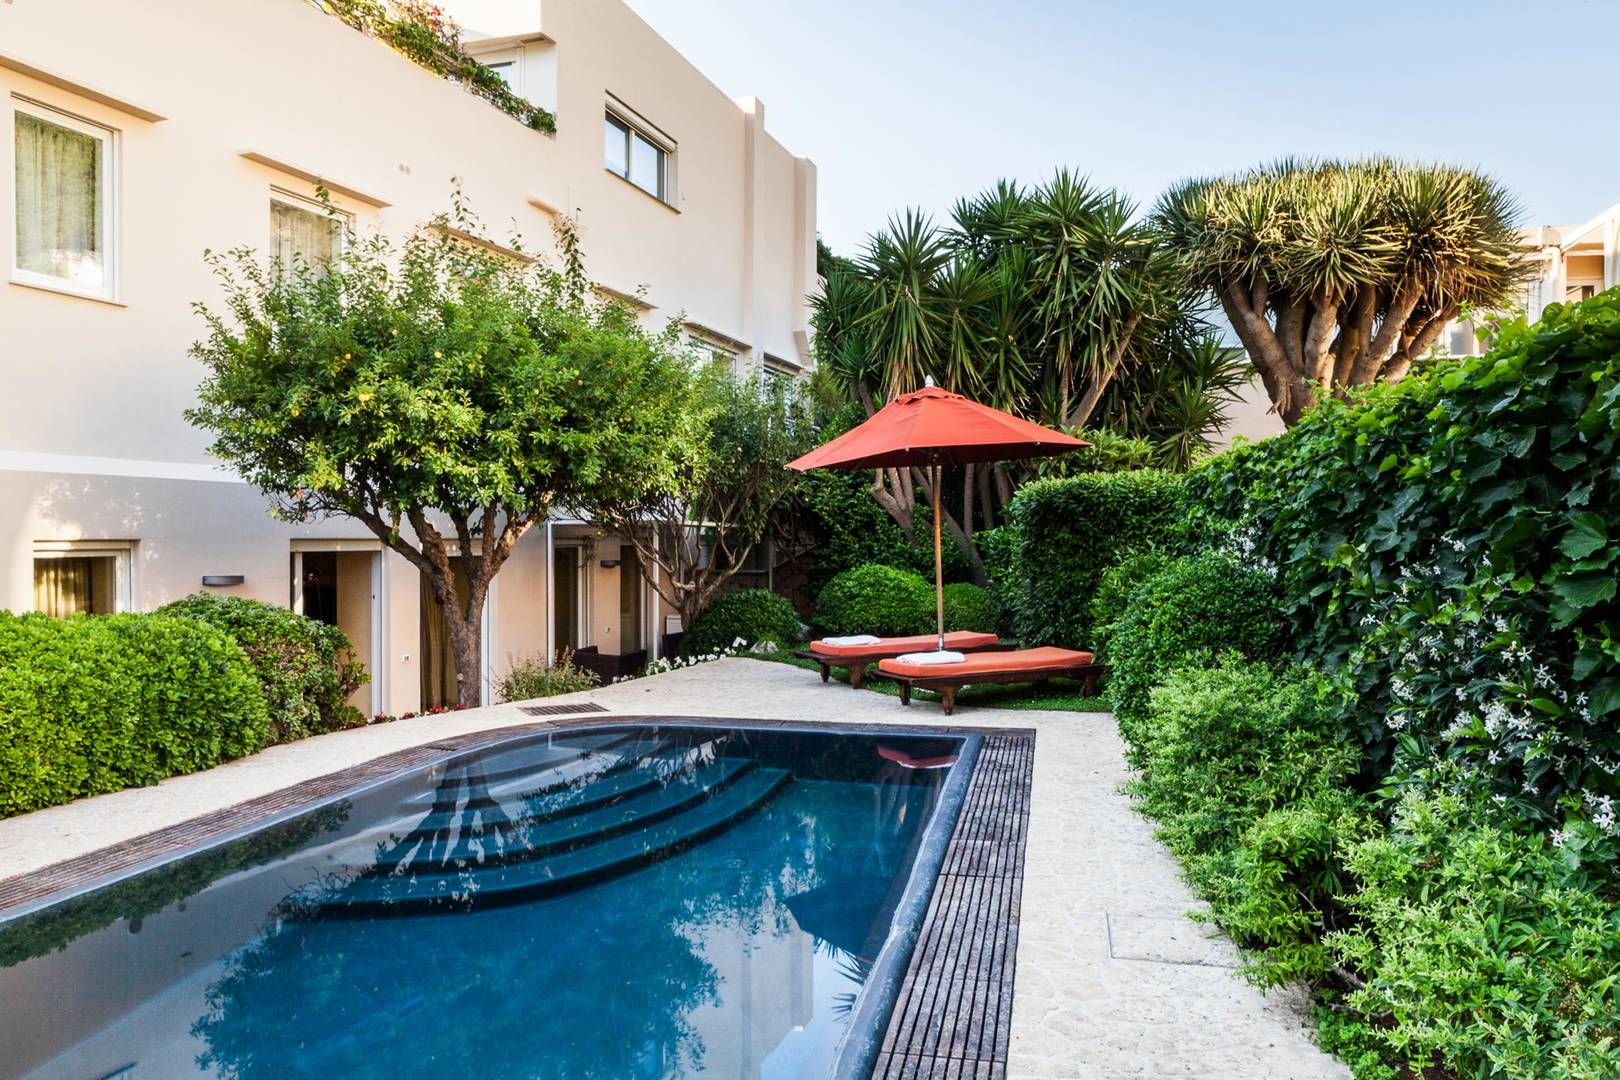 Capri Palace Jumeirah Suites wth Private Pool and Garden Andromeda Pool